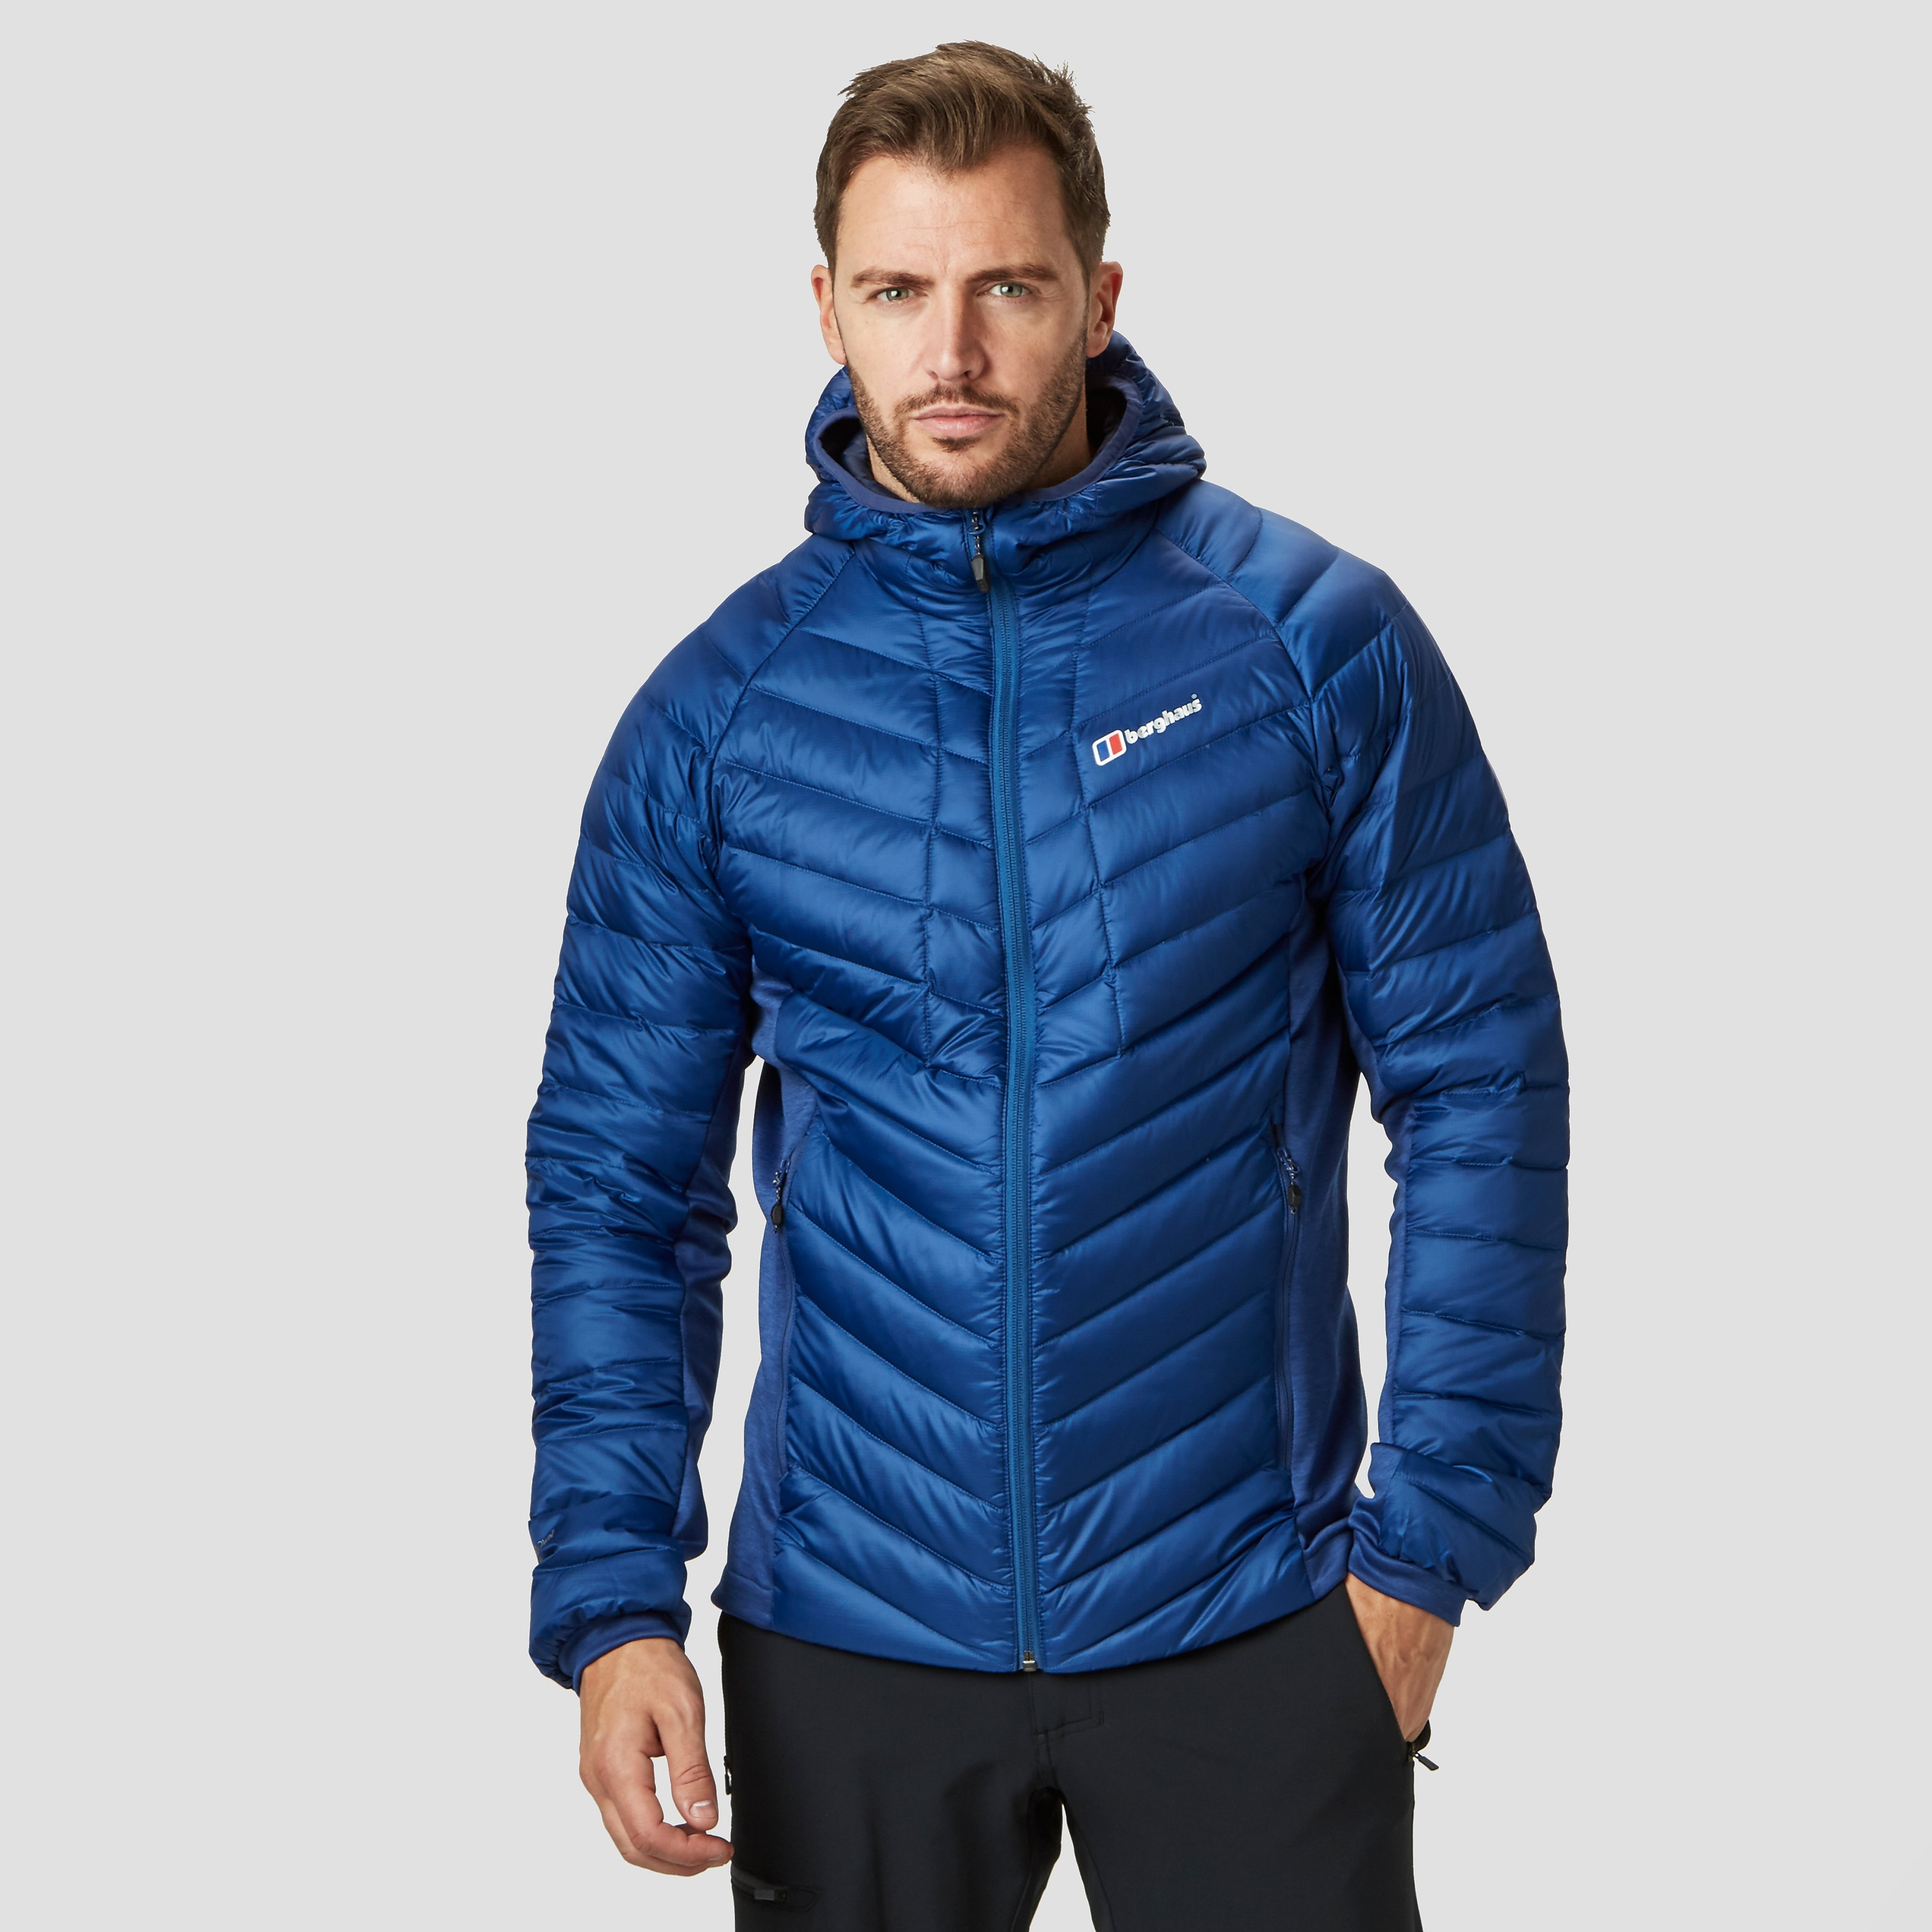 Berghaus Men's Tephra Stretch Jacket